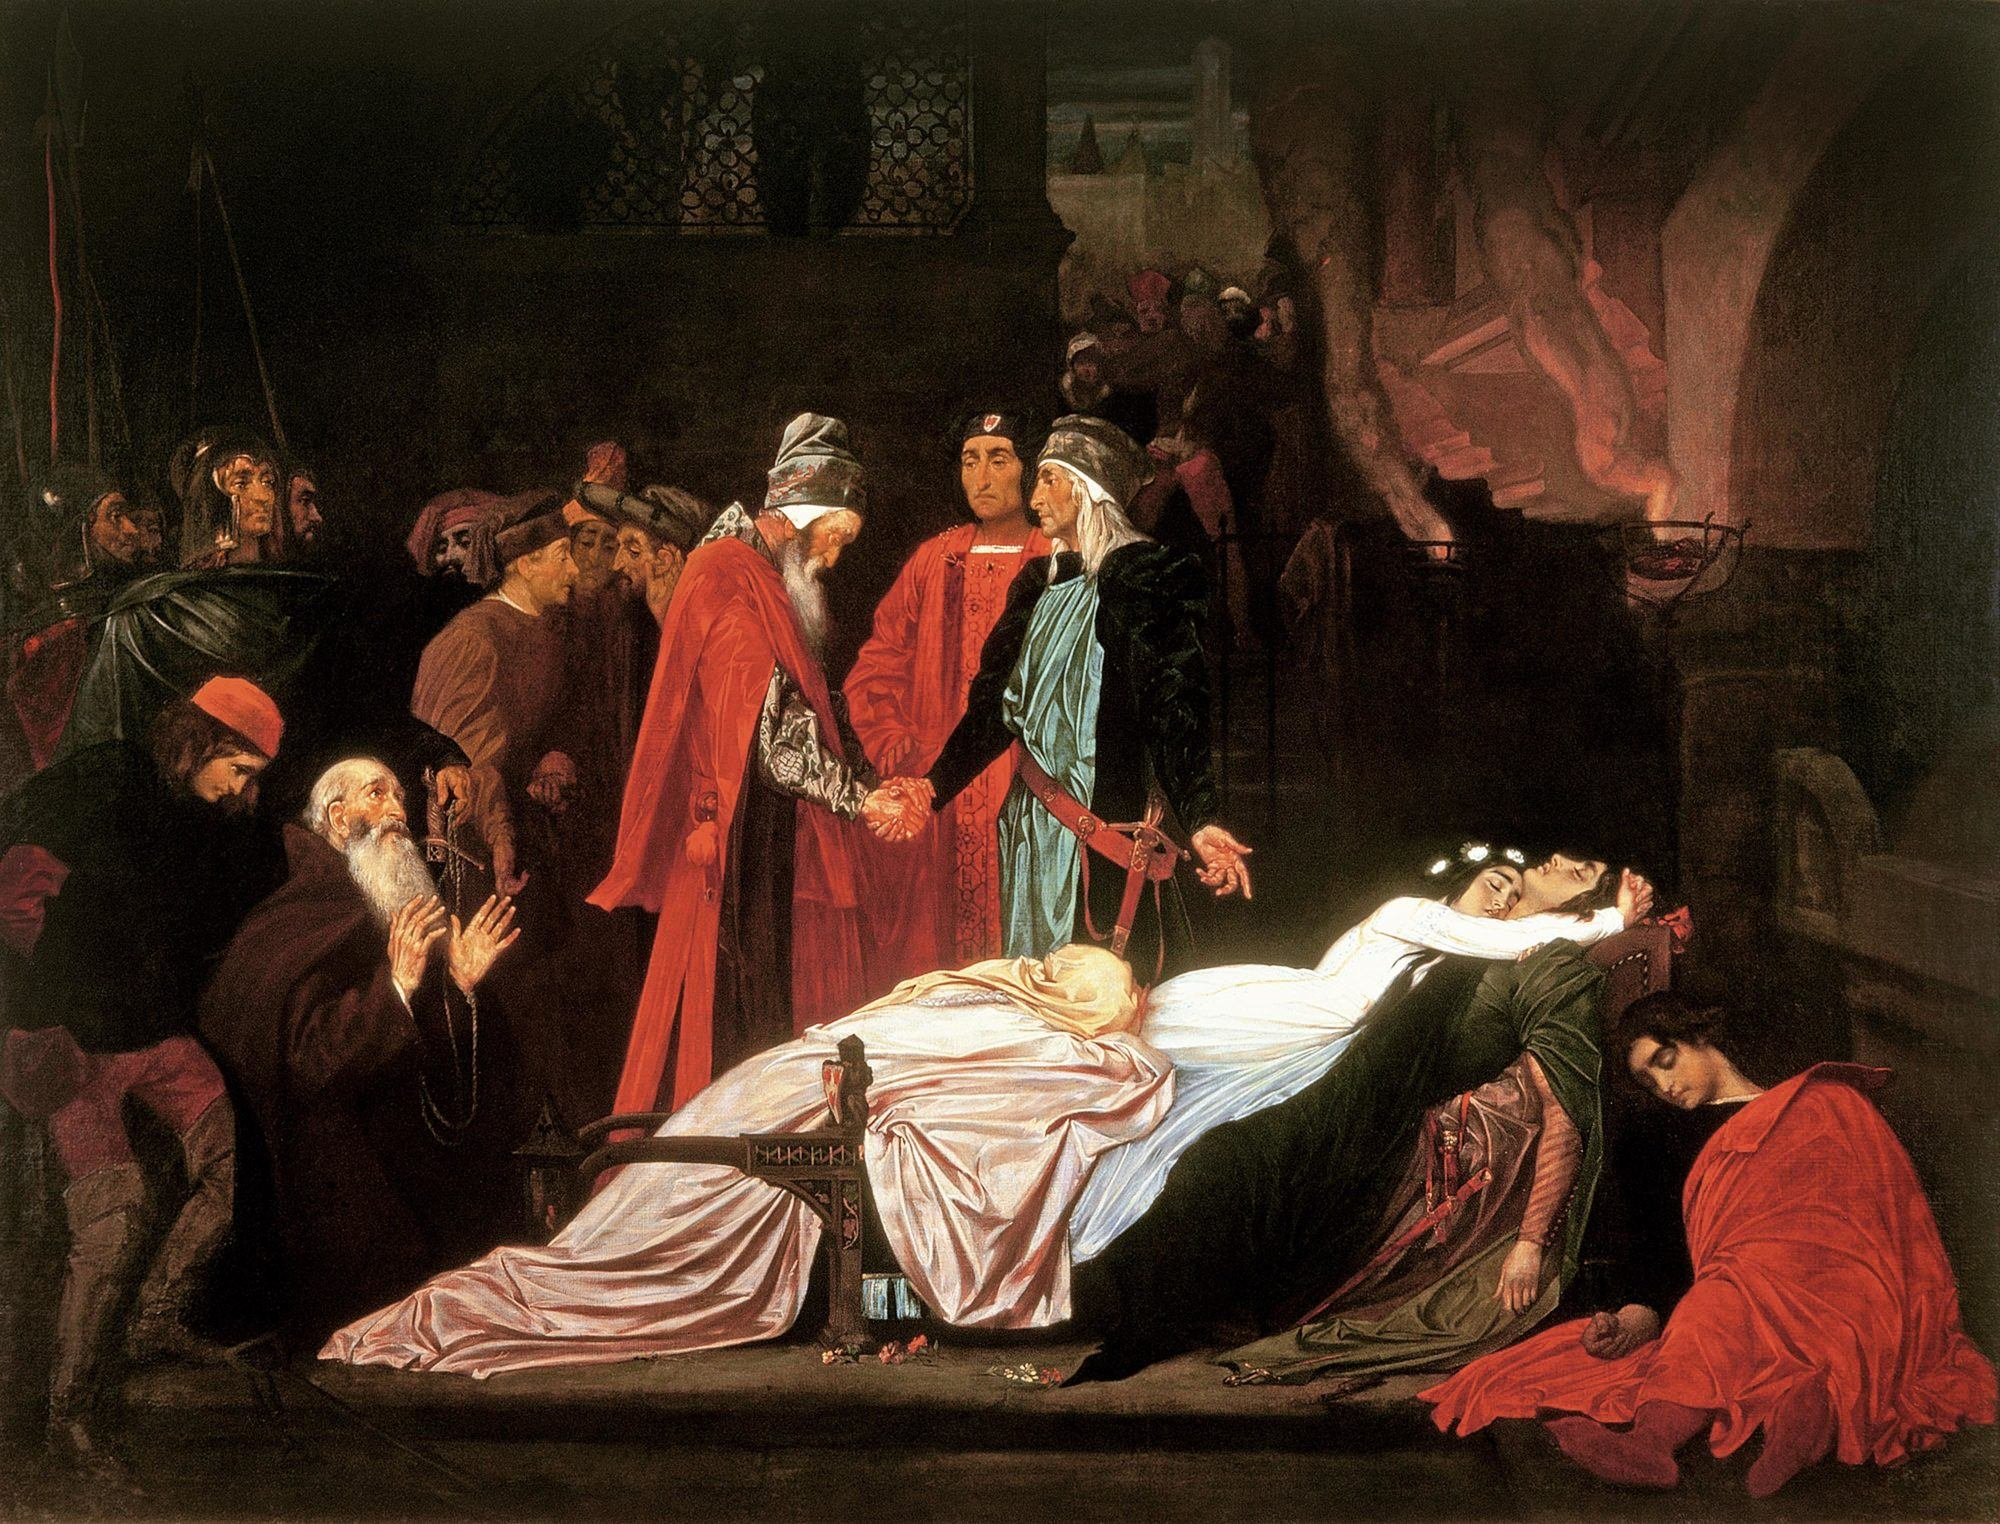 The reconciliation of the Montagues and the Capulets over the dead bodies of Romeo and Juliet